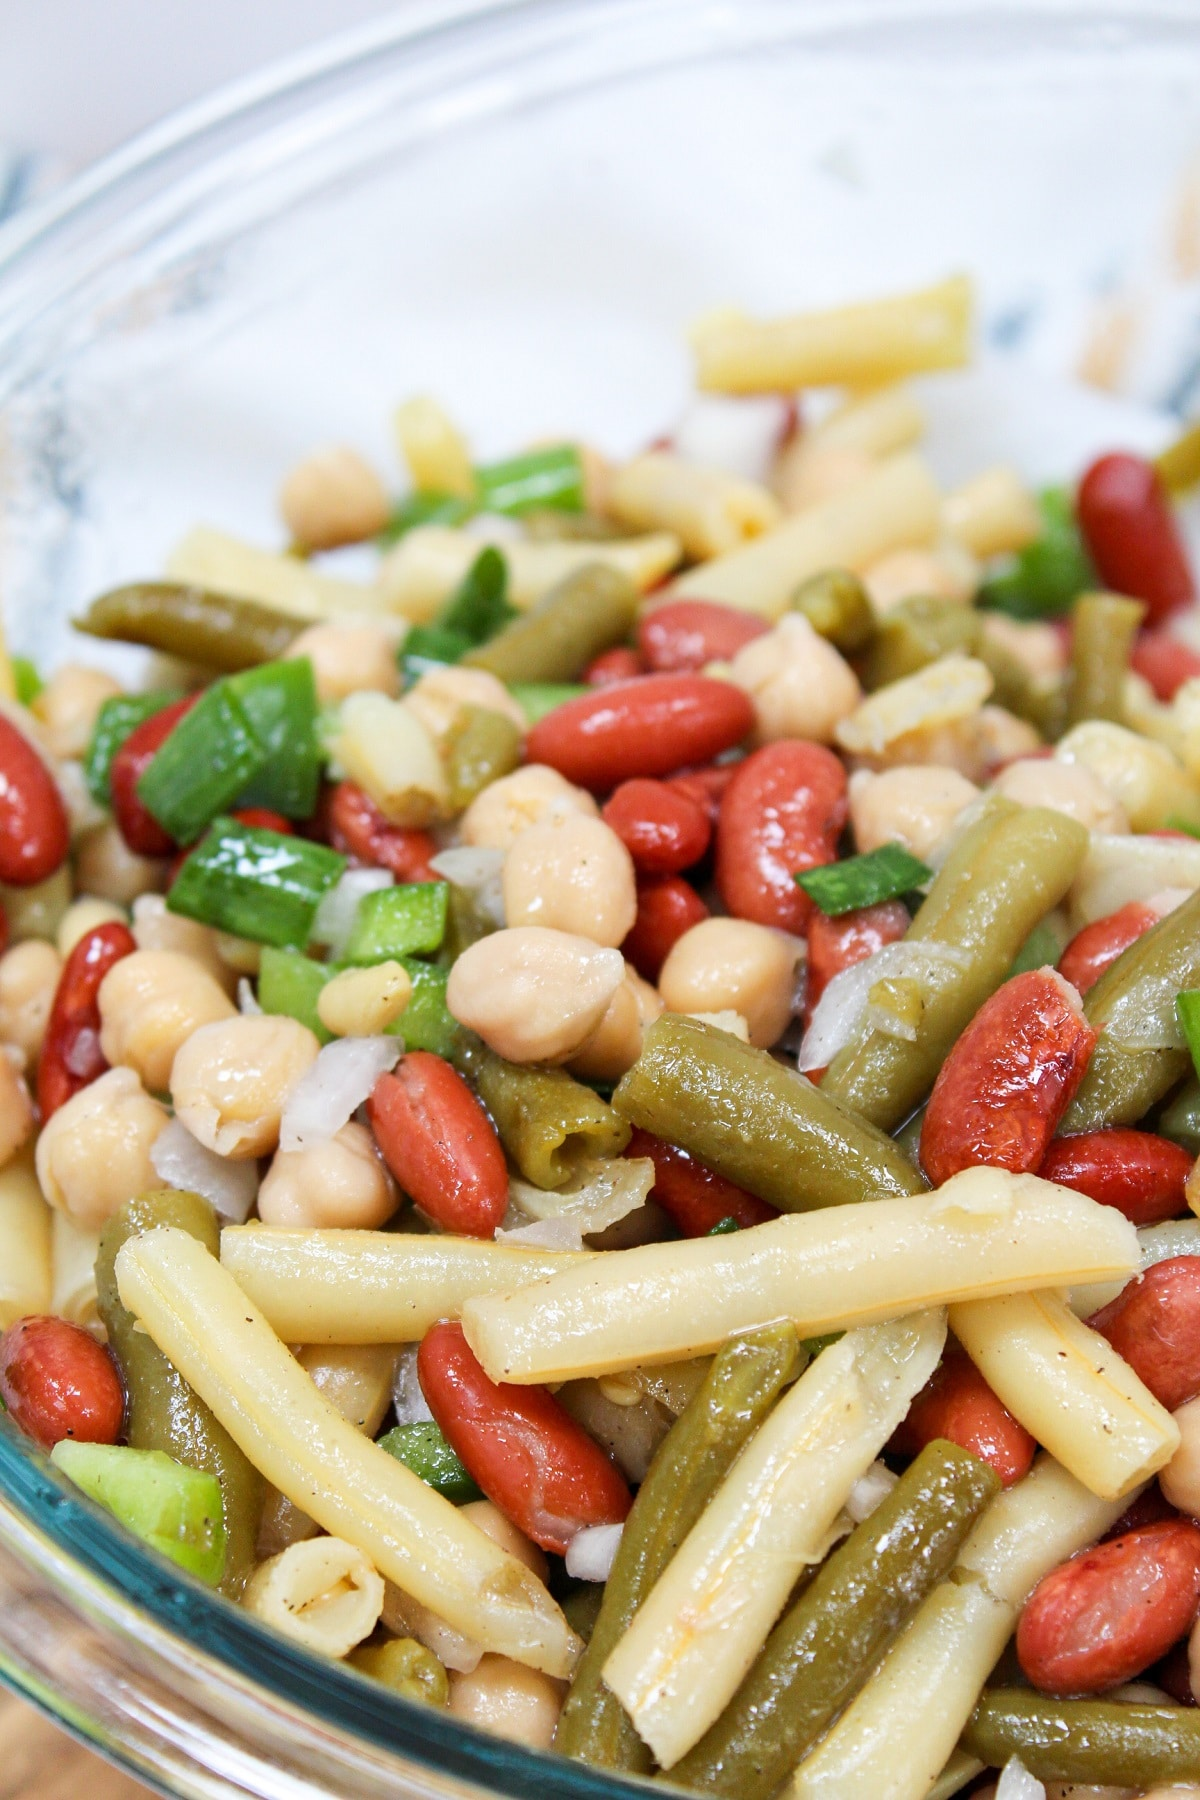 classic 3-bean salad in a glass bowl